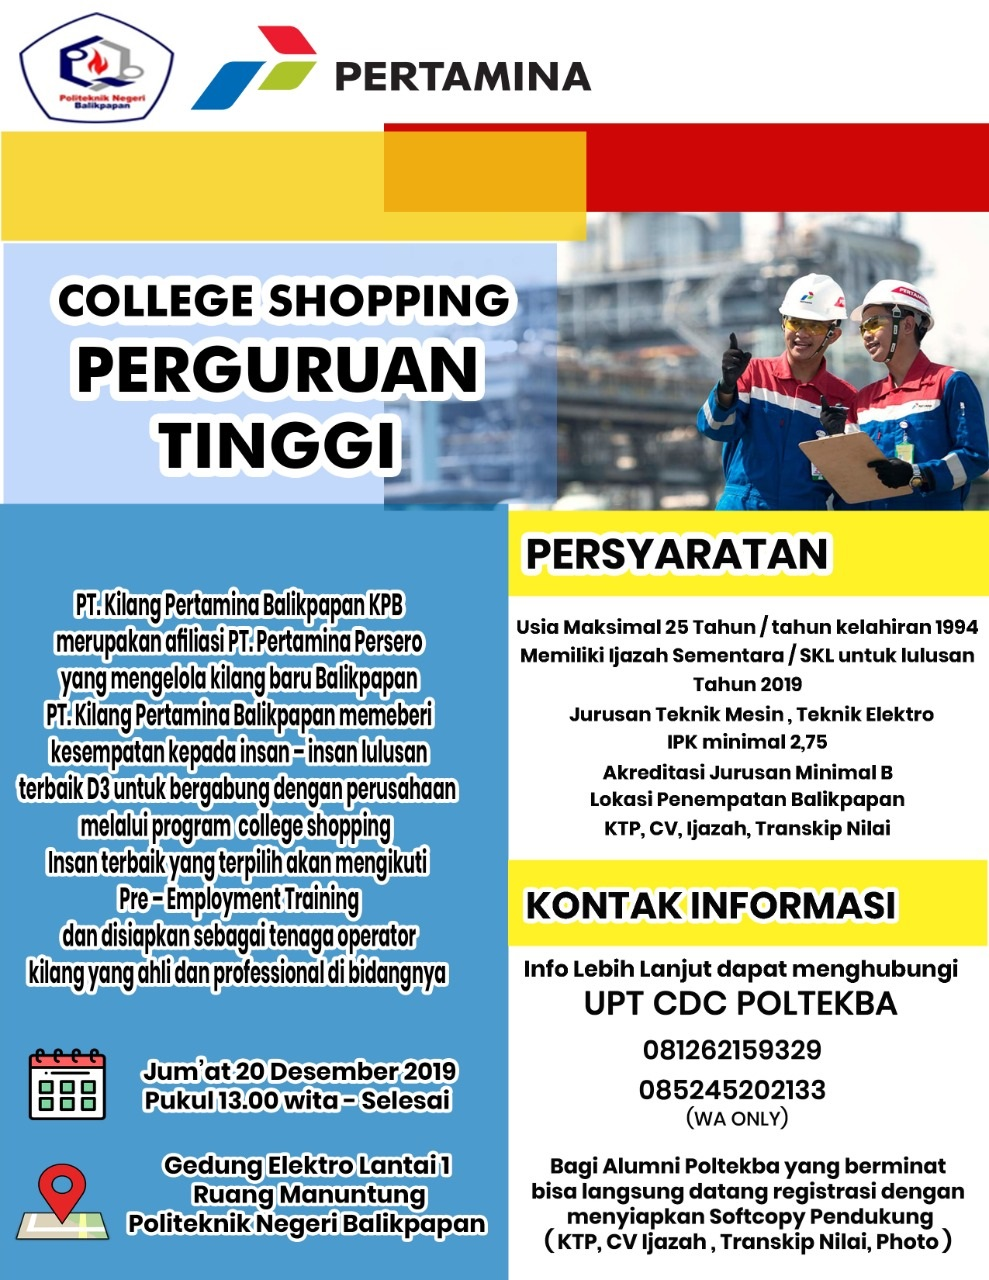 COLLEGE SHOPPING PT. PERTAMINA (PERSERO) 2019